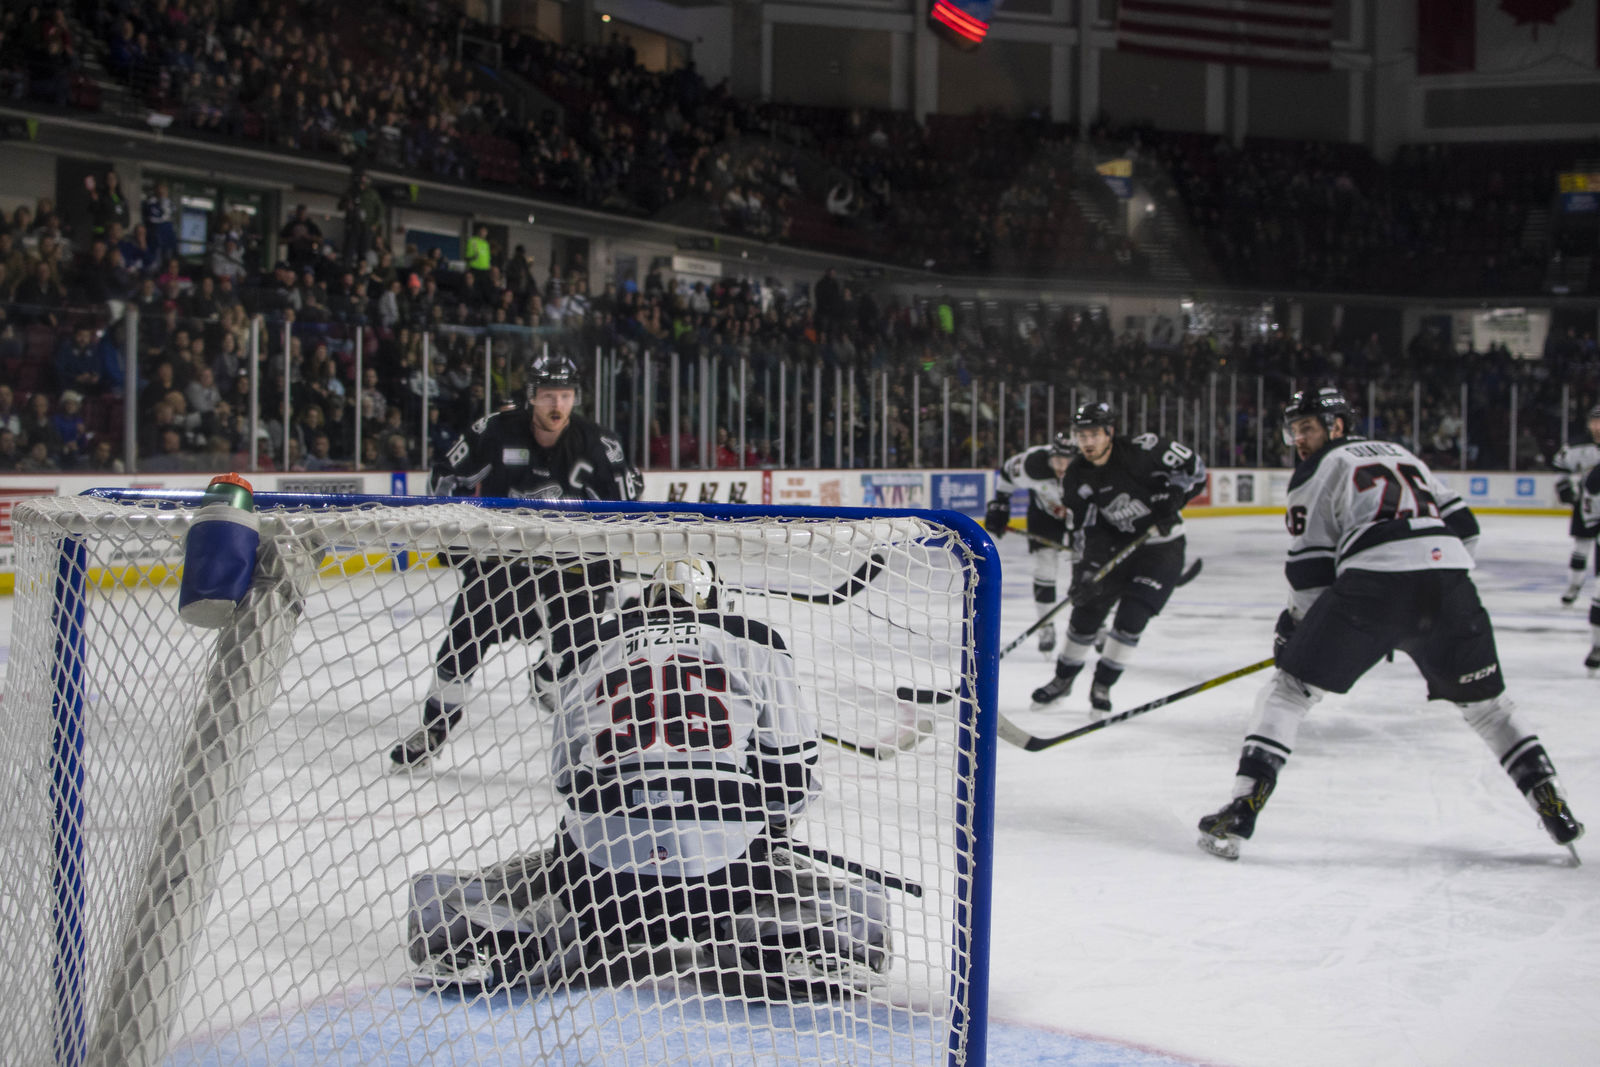 The Idaho Steelheads played the Rapid City Rush Friday night at Centurylink Arena in Boise. The Steelheads were able to pull off a three to two victory over the Rush, putting them one and one in the series. Both teams play again Saturday night at 7:10 PM in Boise. (Photos by Axel Quartarone)